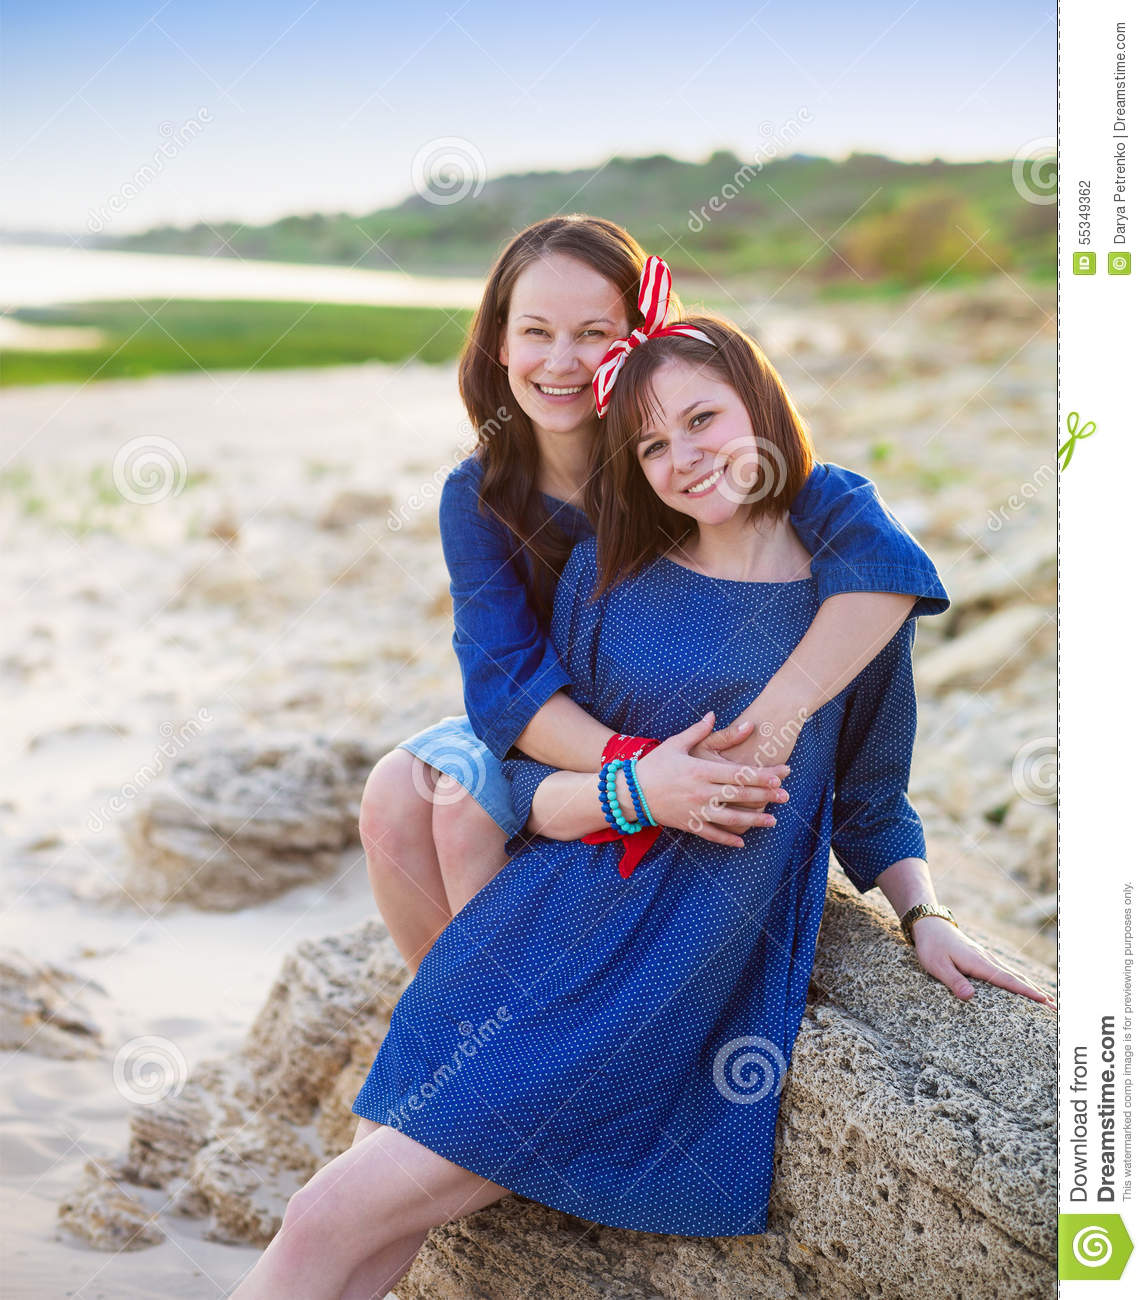 Young Happy Beautiful Family Playing Together On The Beach: Portrait Of A Happy Mother And Her Teen Daughter Stock